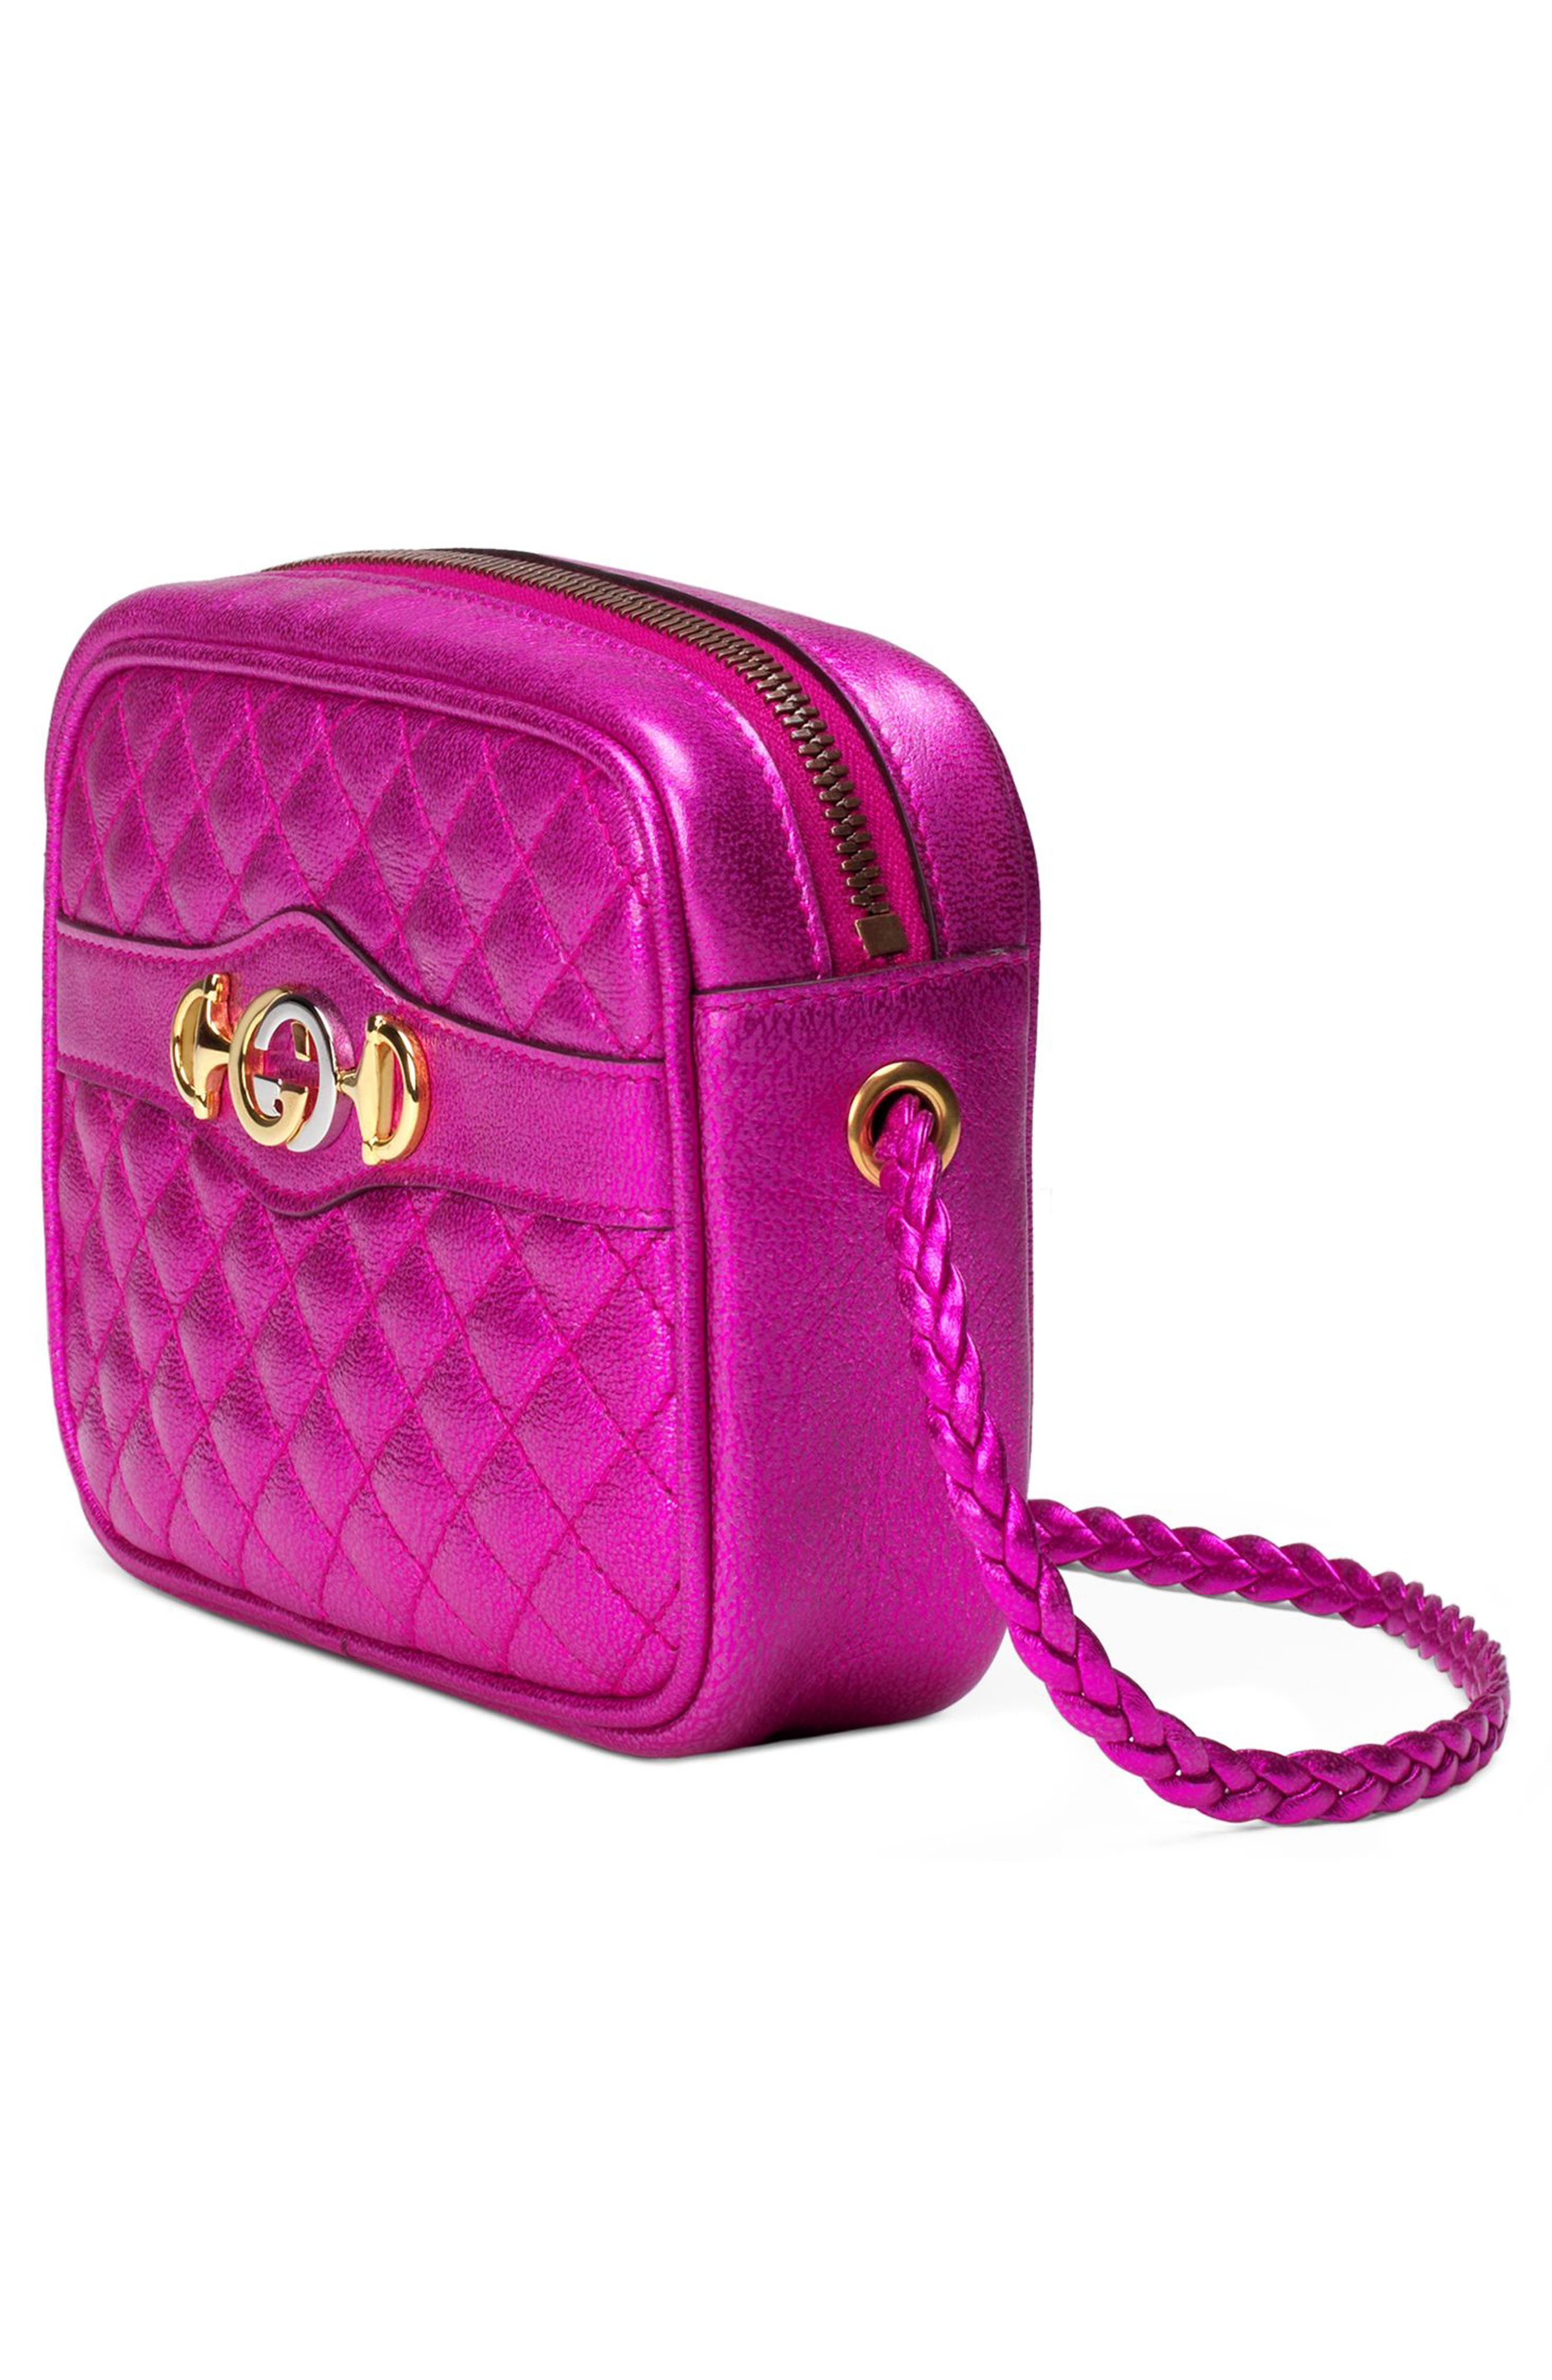 Quilted Metallic Leather Camera Bag,                             Alternate thumbnail 4, color,                             FUXIA